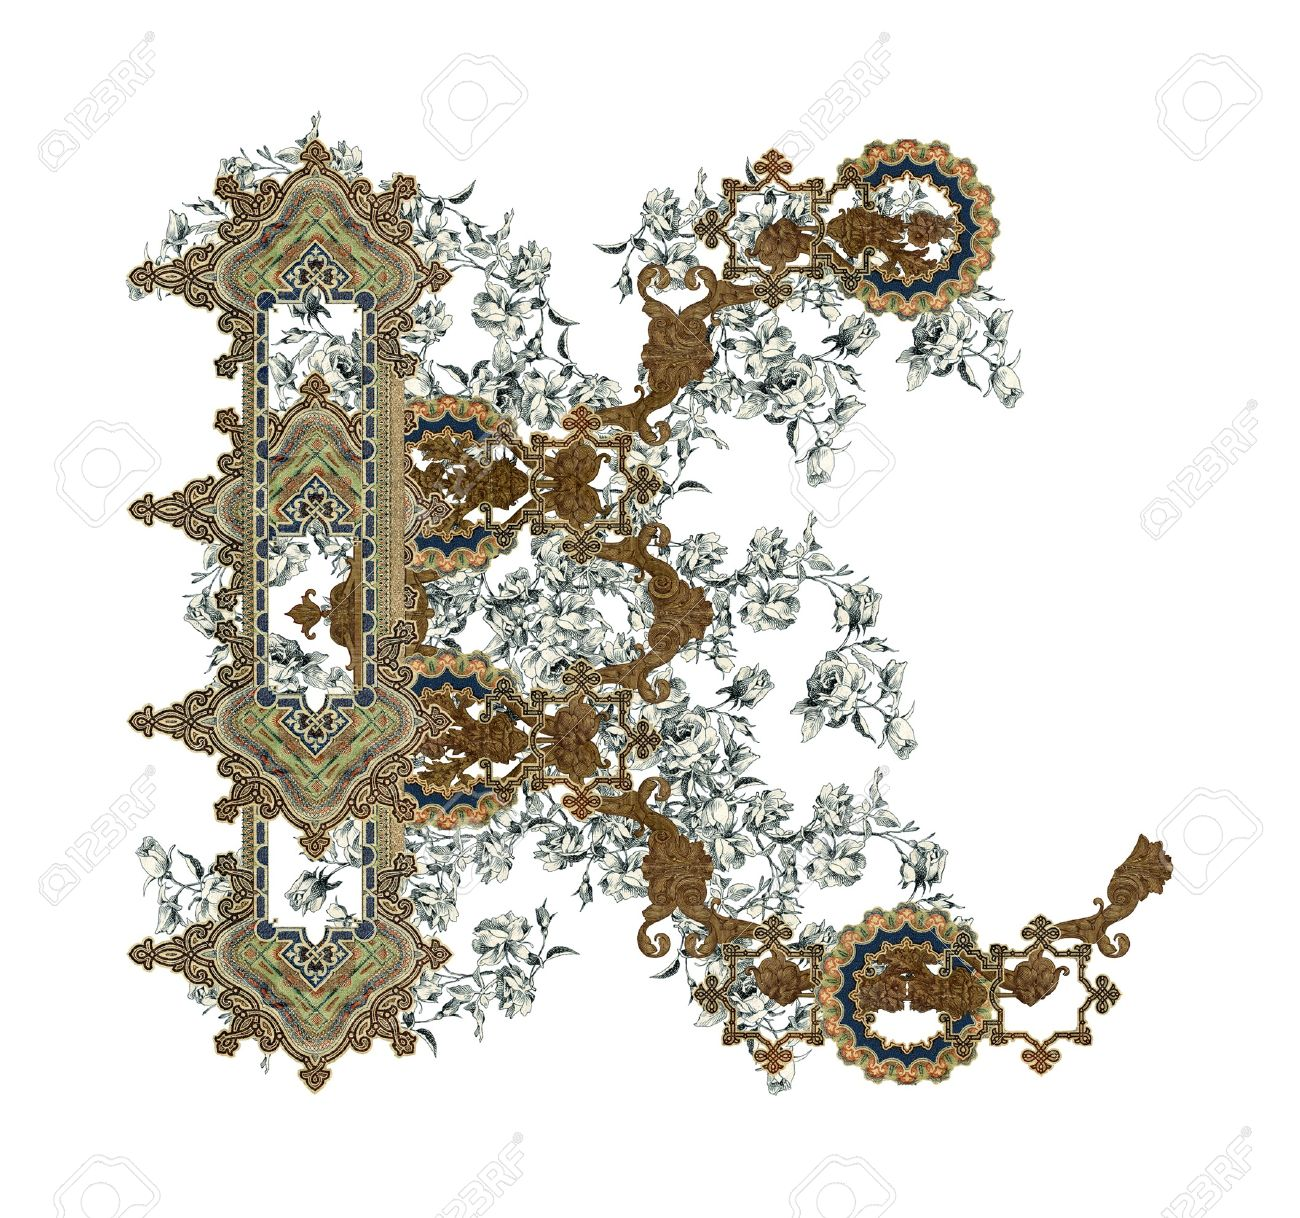 Luxuriously illustrated old capital letter K with flowers. - 6971030